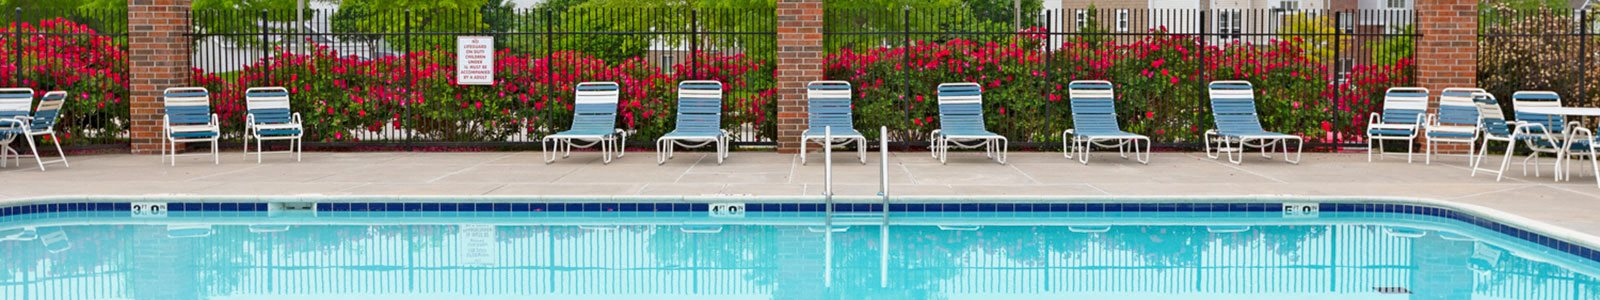 Poolside Sundeck at Brentwood Park Apartments, La Vista, NE